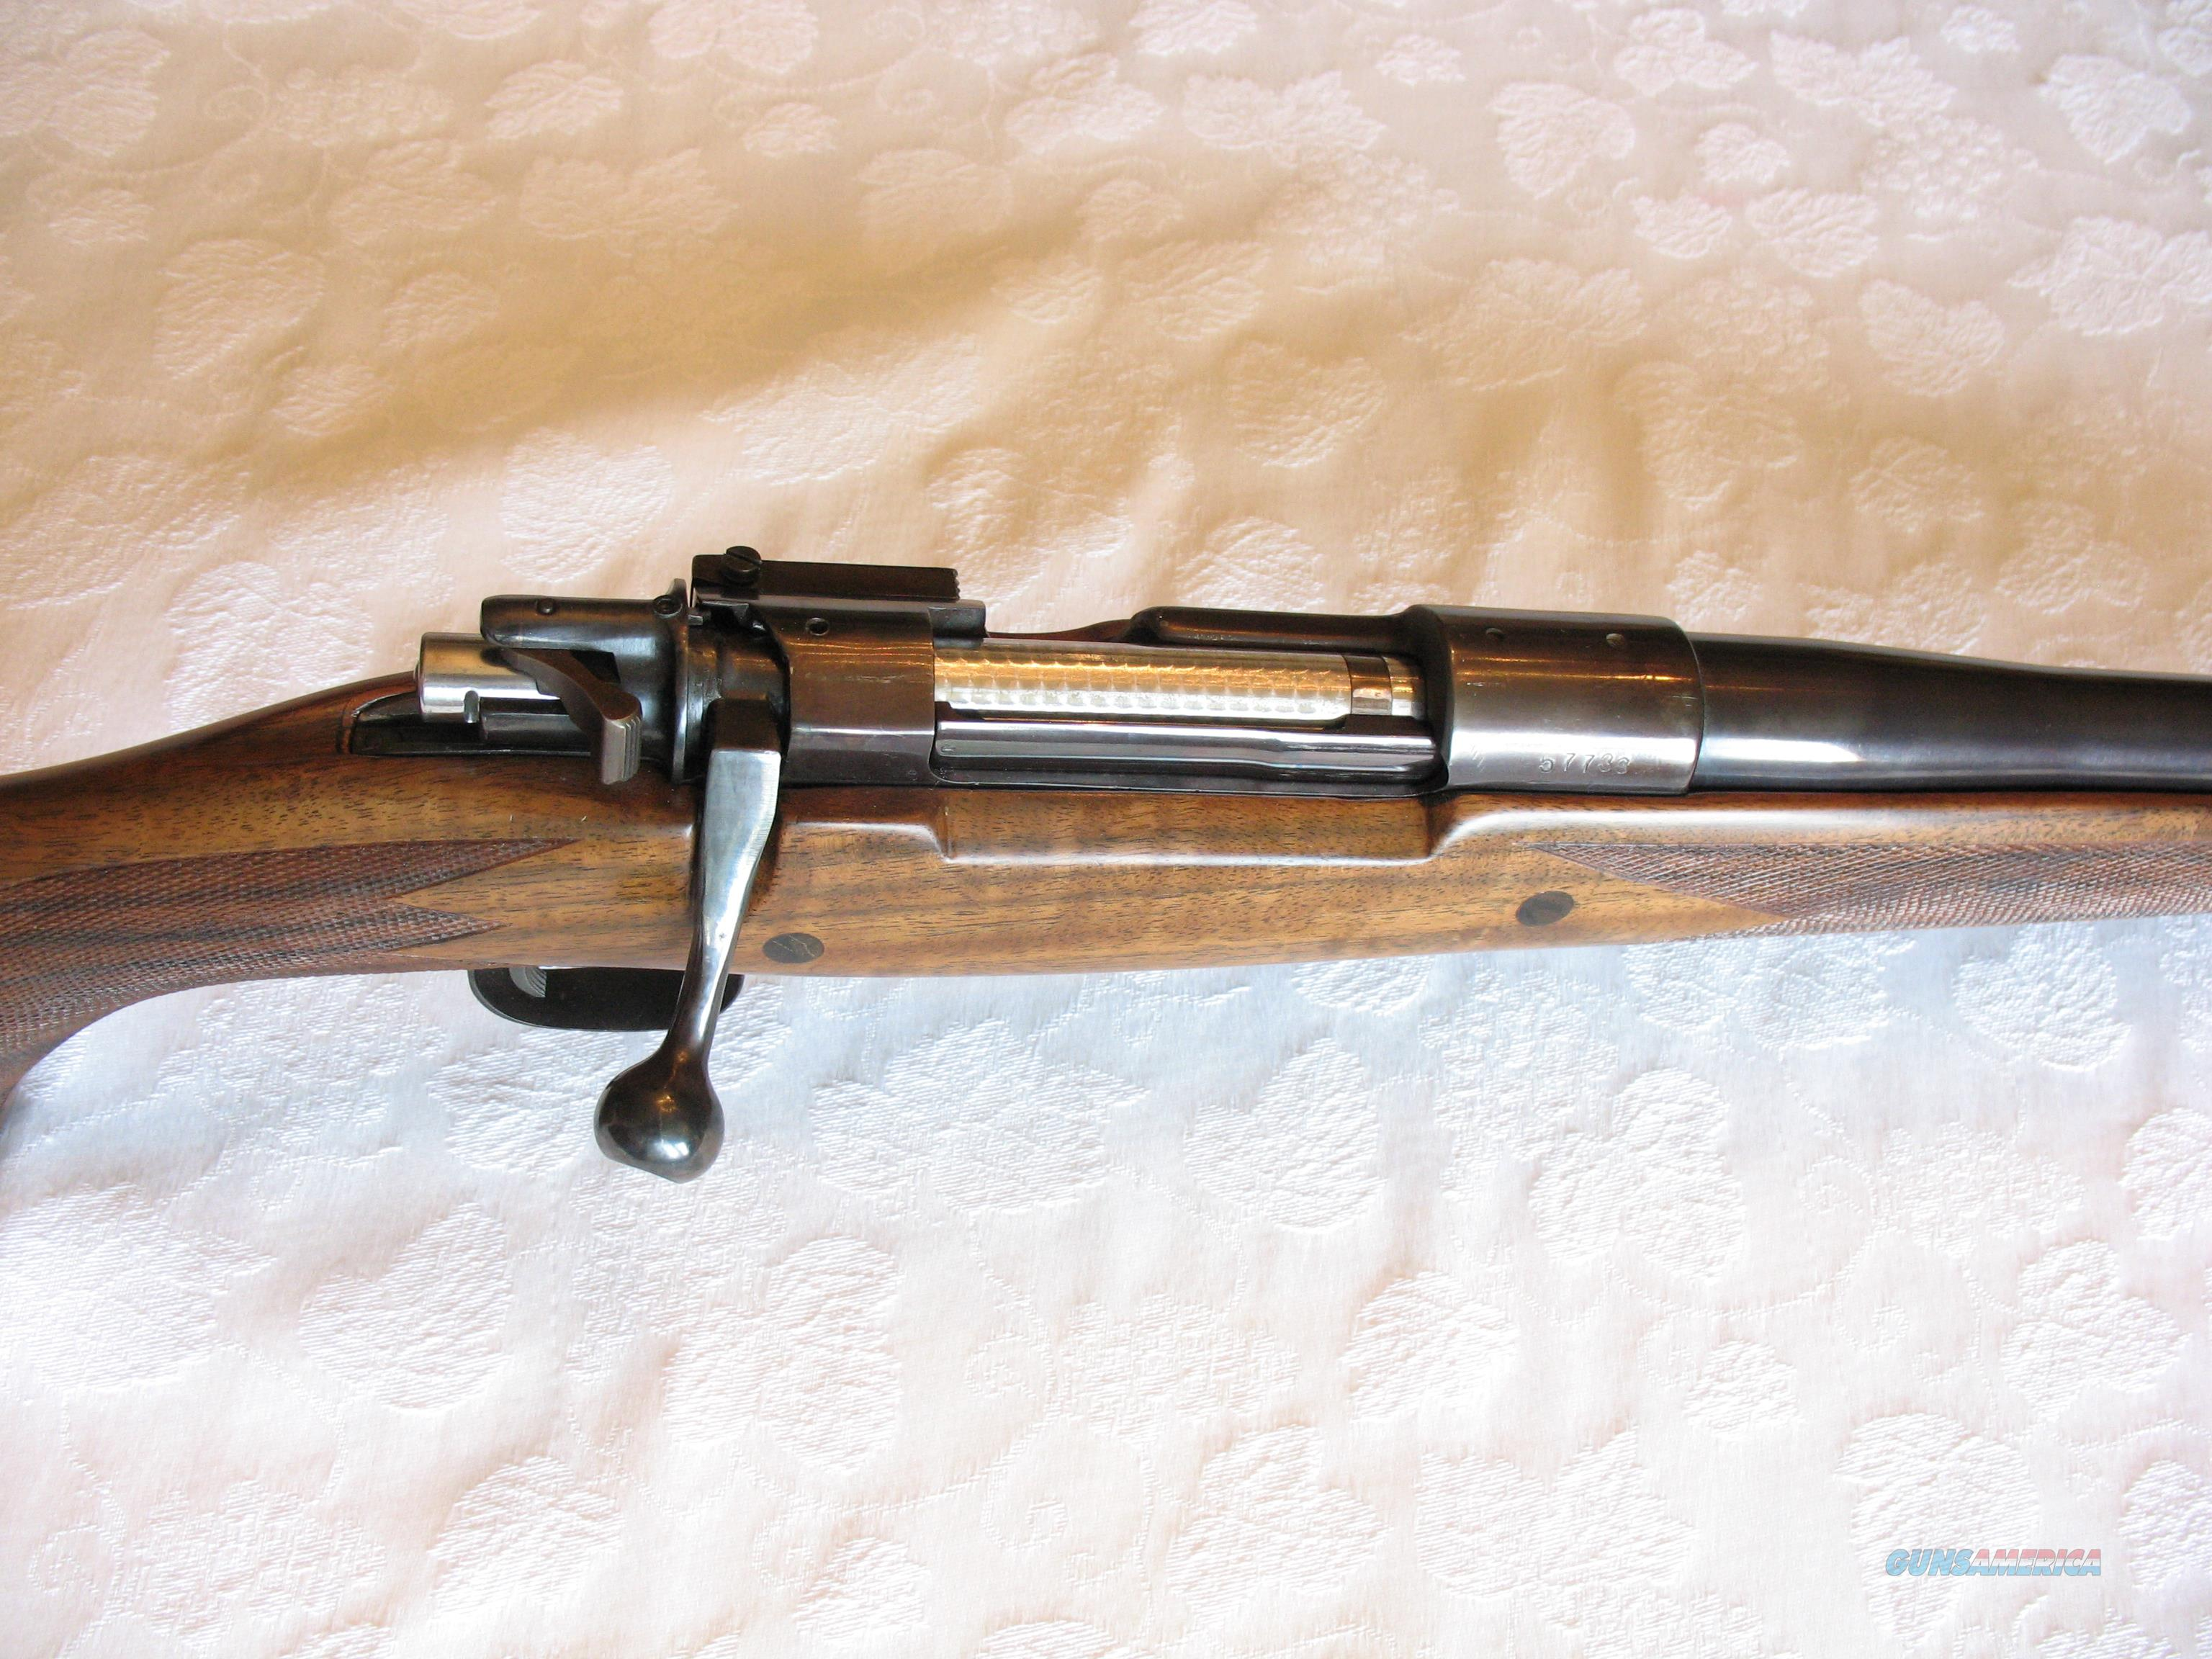 HQ Mauser Rifle Wallpapers | File 721.76Kb